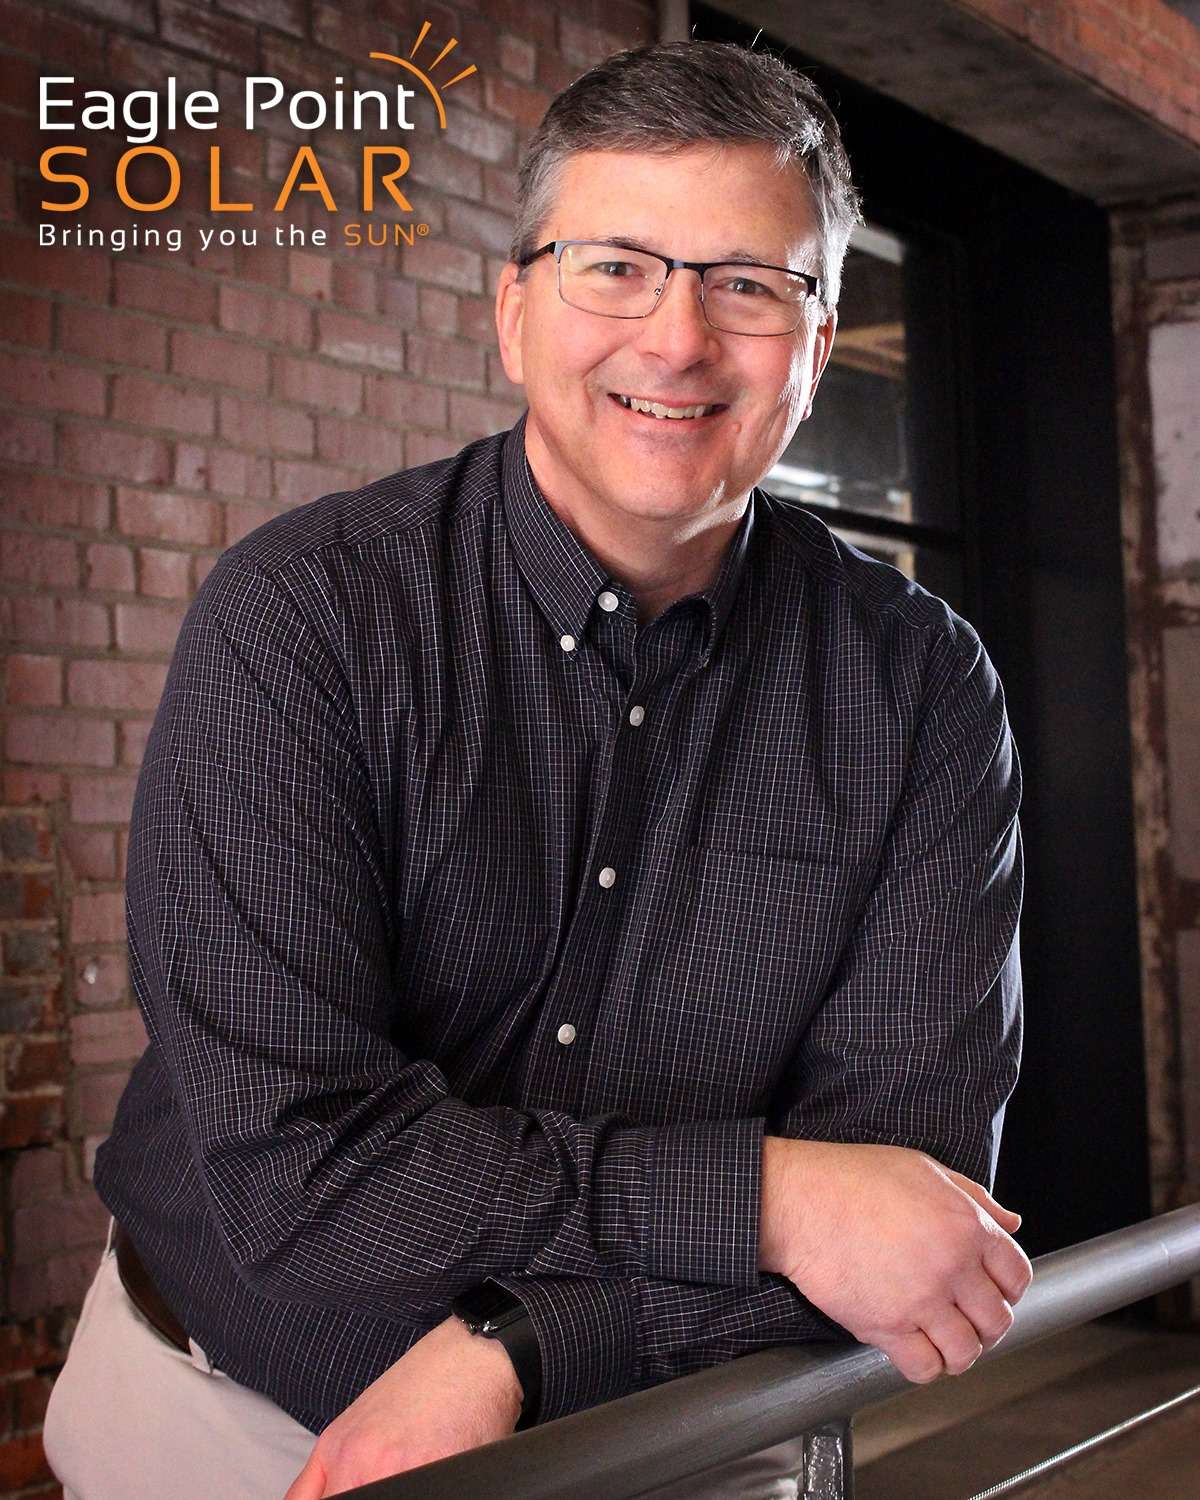 Mike Meeker has joined our team as a Solar Energy Consultant covering Freeport/Rockford, Illinois